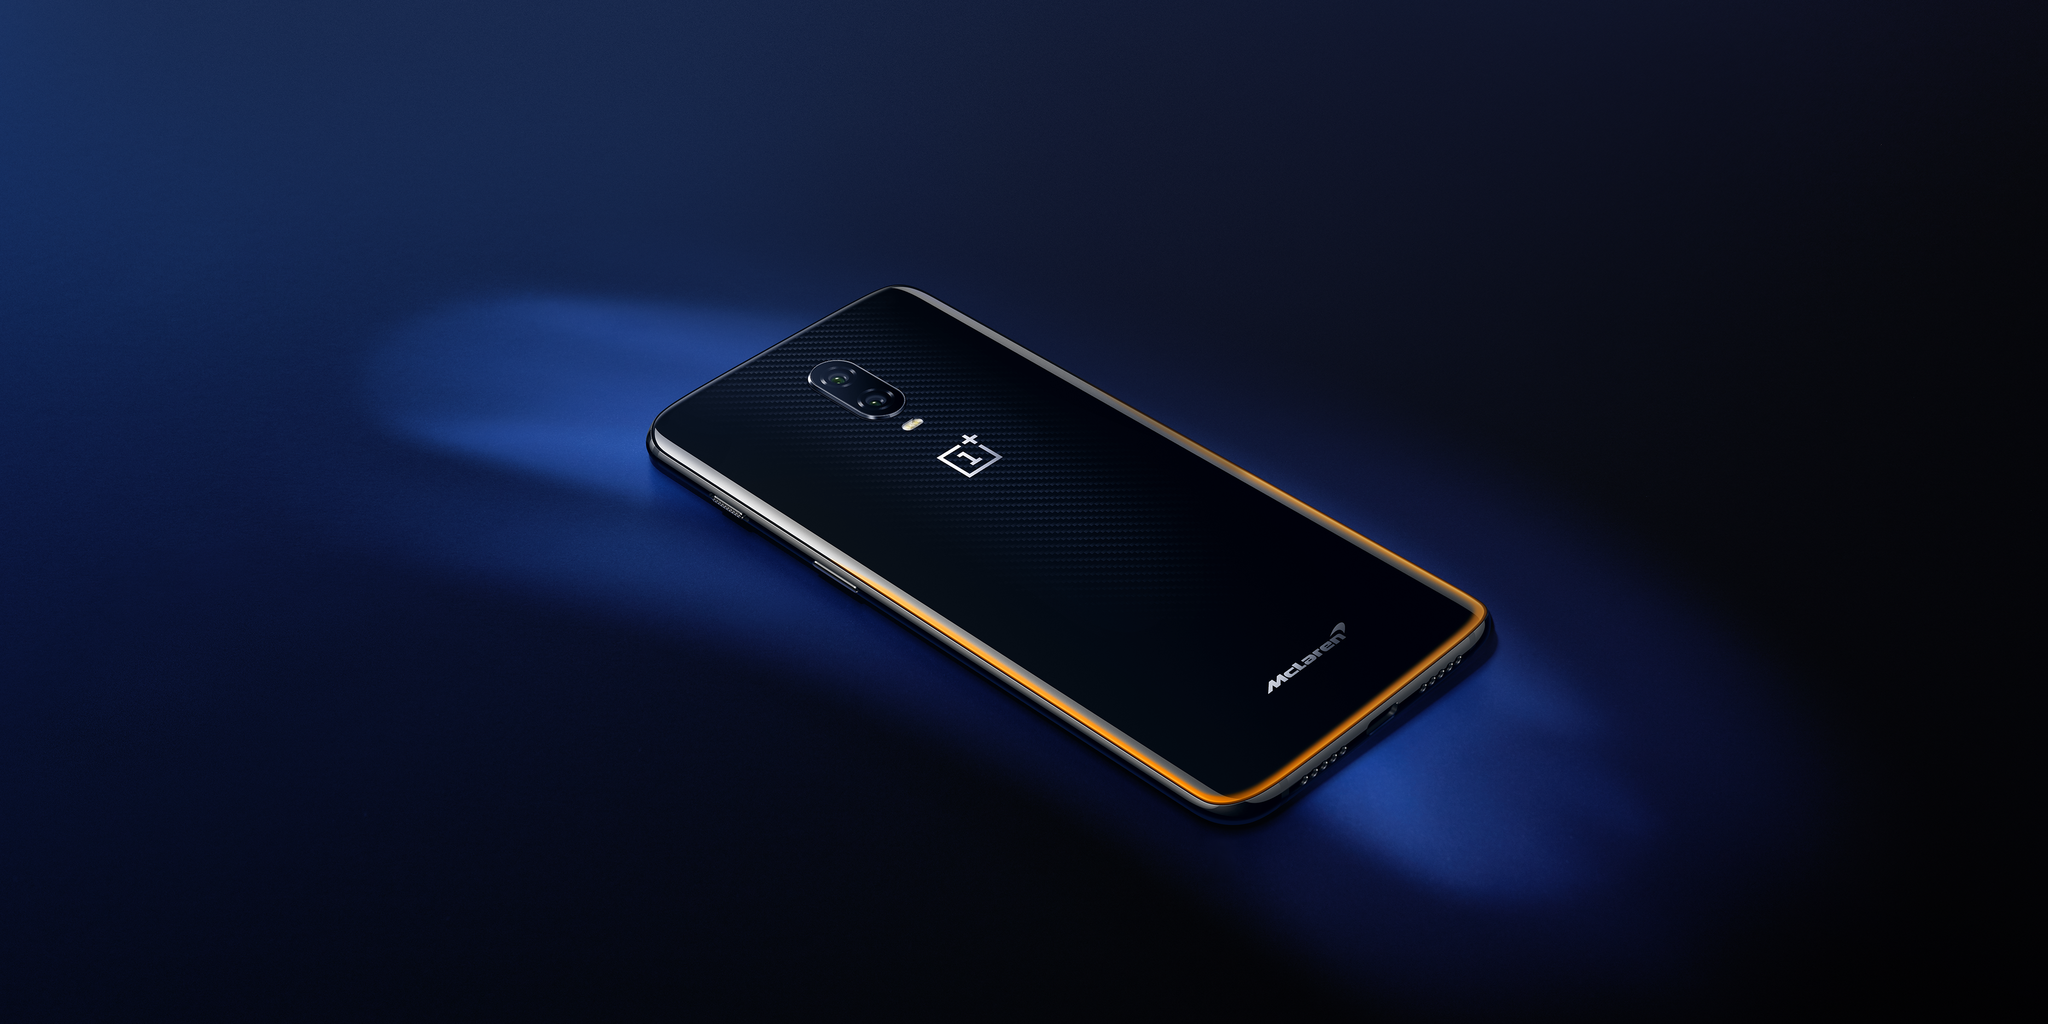 OnePlus 6T McLaren edition announced with 10GB of RAM